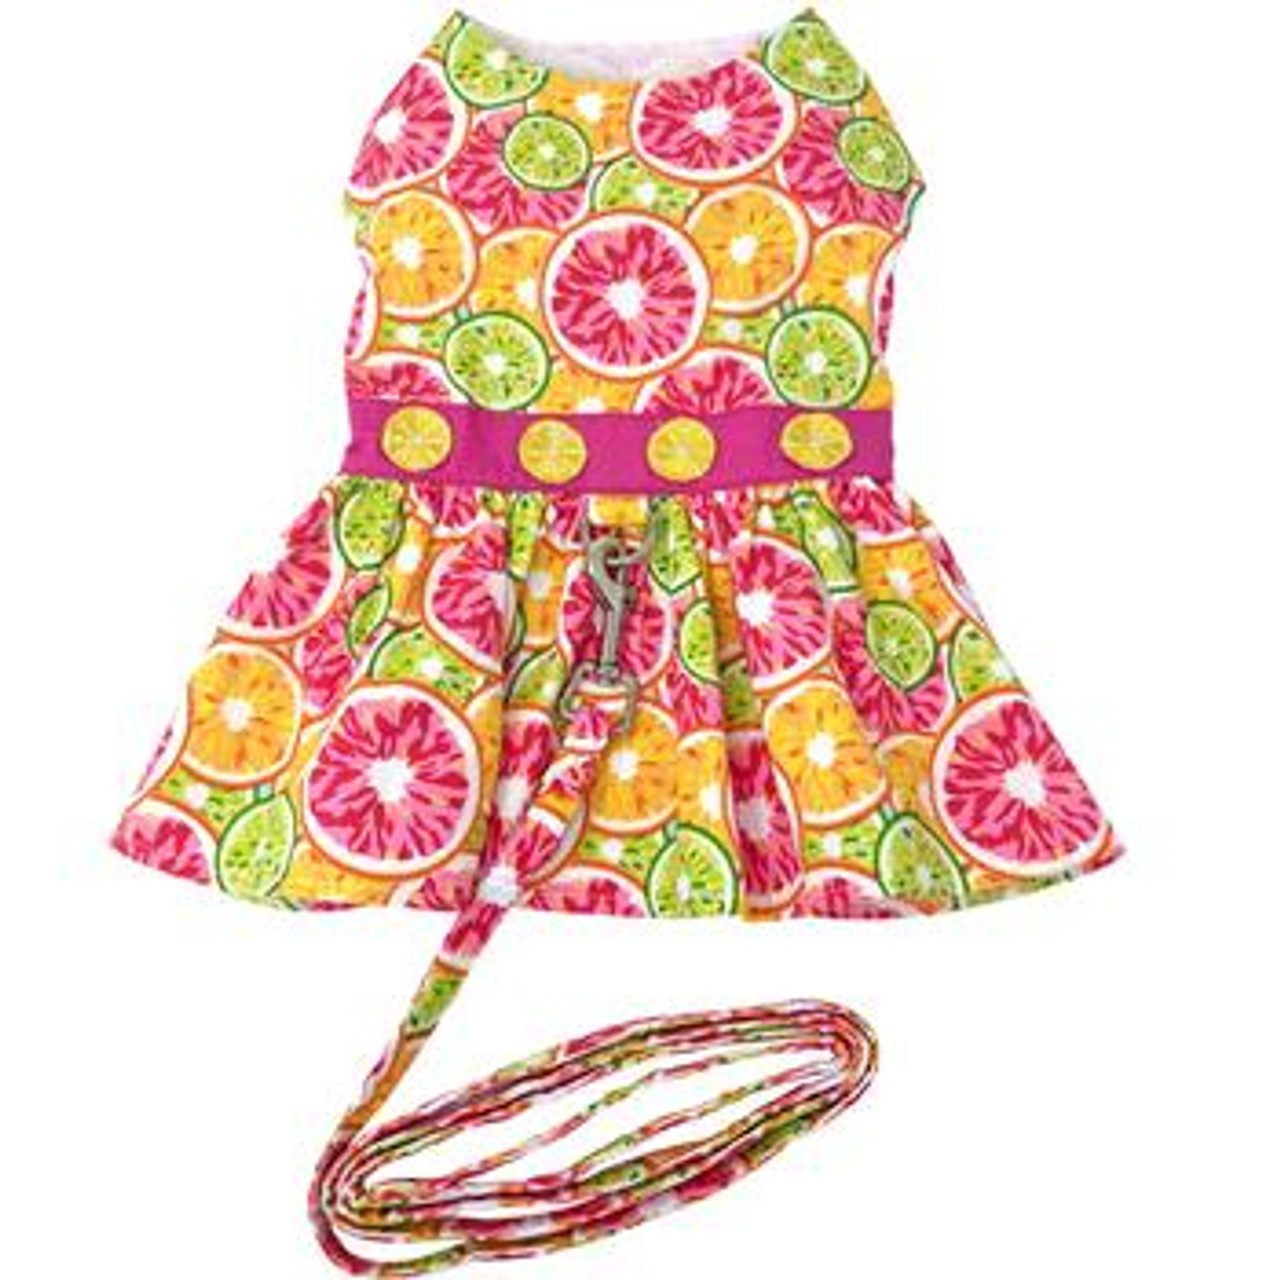 Citrus Slice Harness Dress with Matching Leash